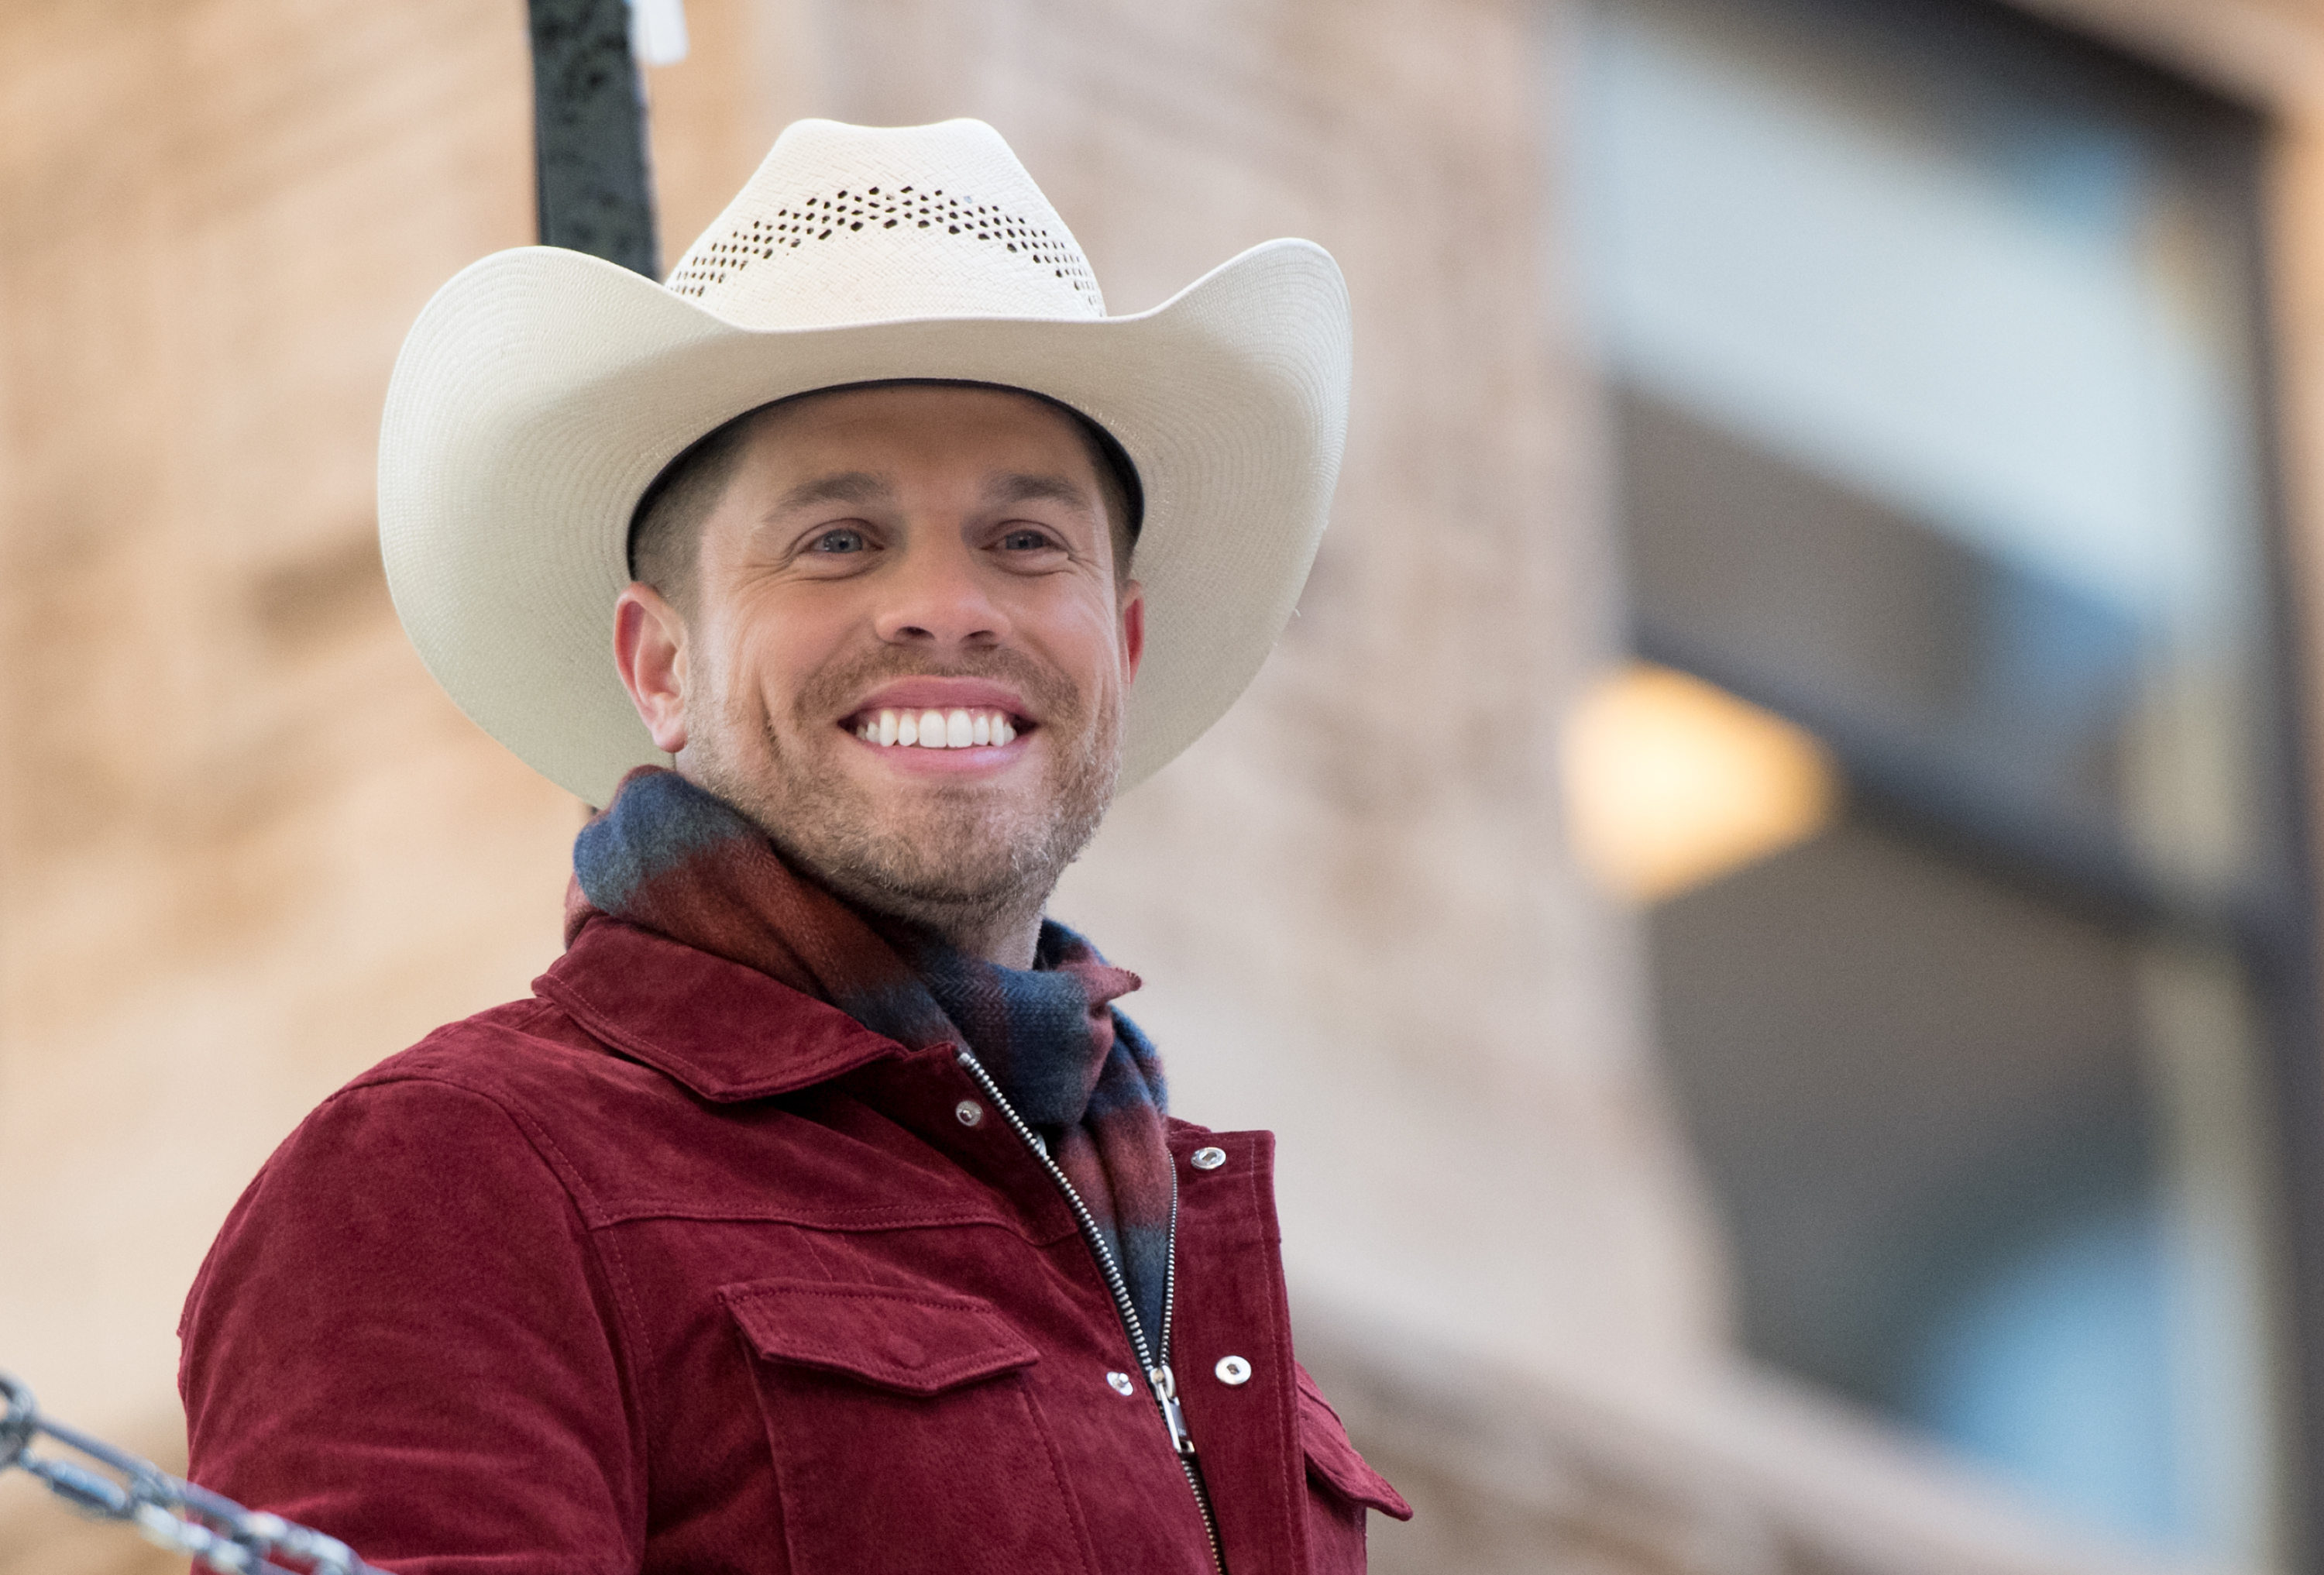 Dustin Lynch's Grandma Makes Him Perform at Church During Christmas